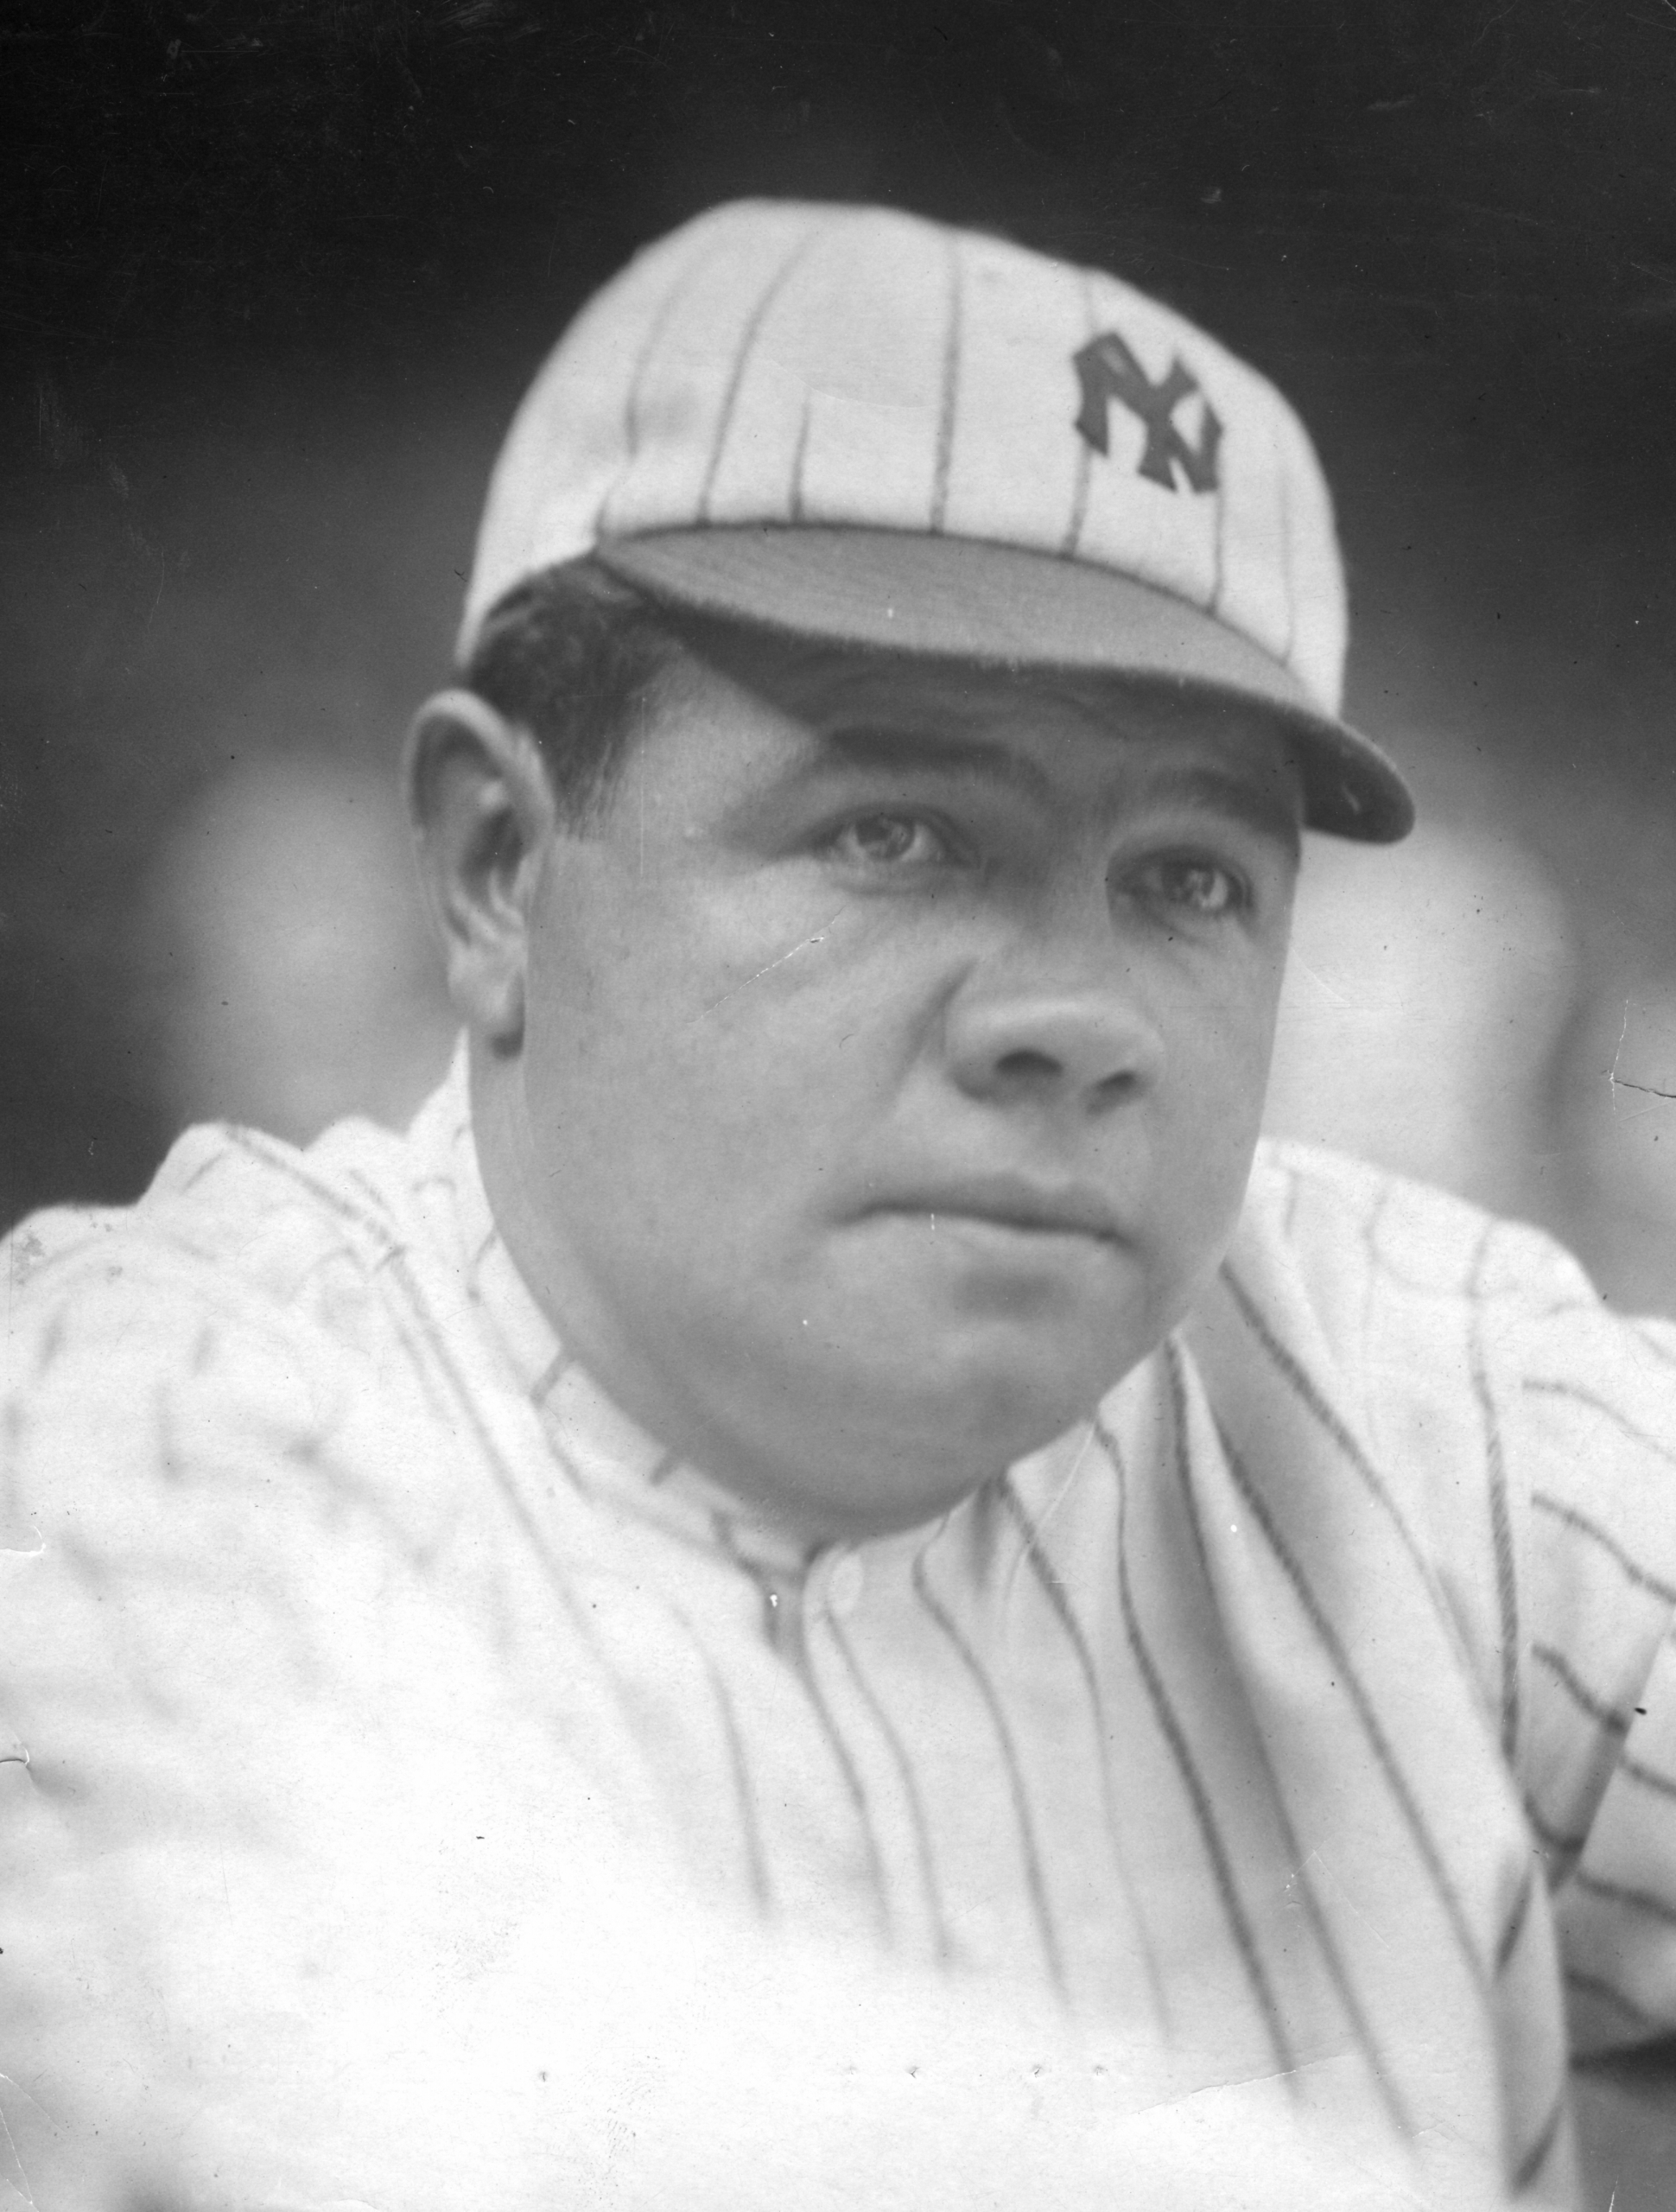 Babe Ruth, circa 1920 (NATIONAL BASEBALL HALL OF FAME LIBRARY)